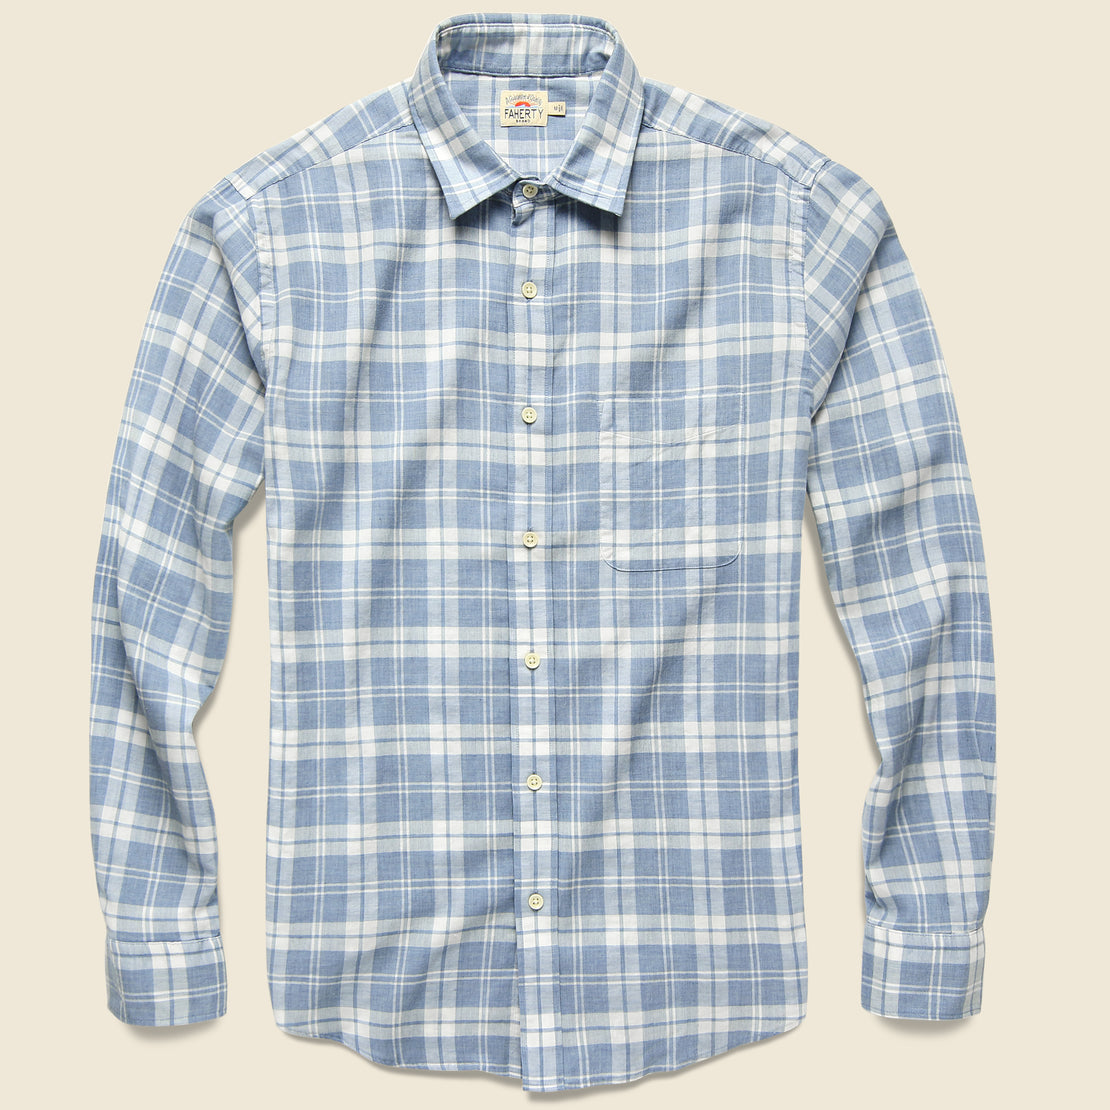 Faherty Ventura Shirt - Steel Heather Plaid